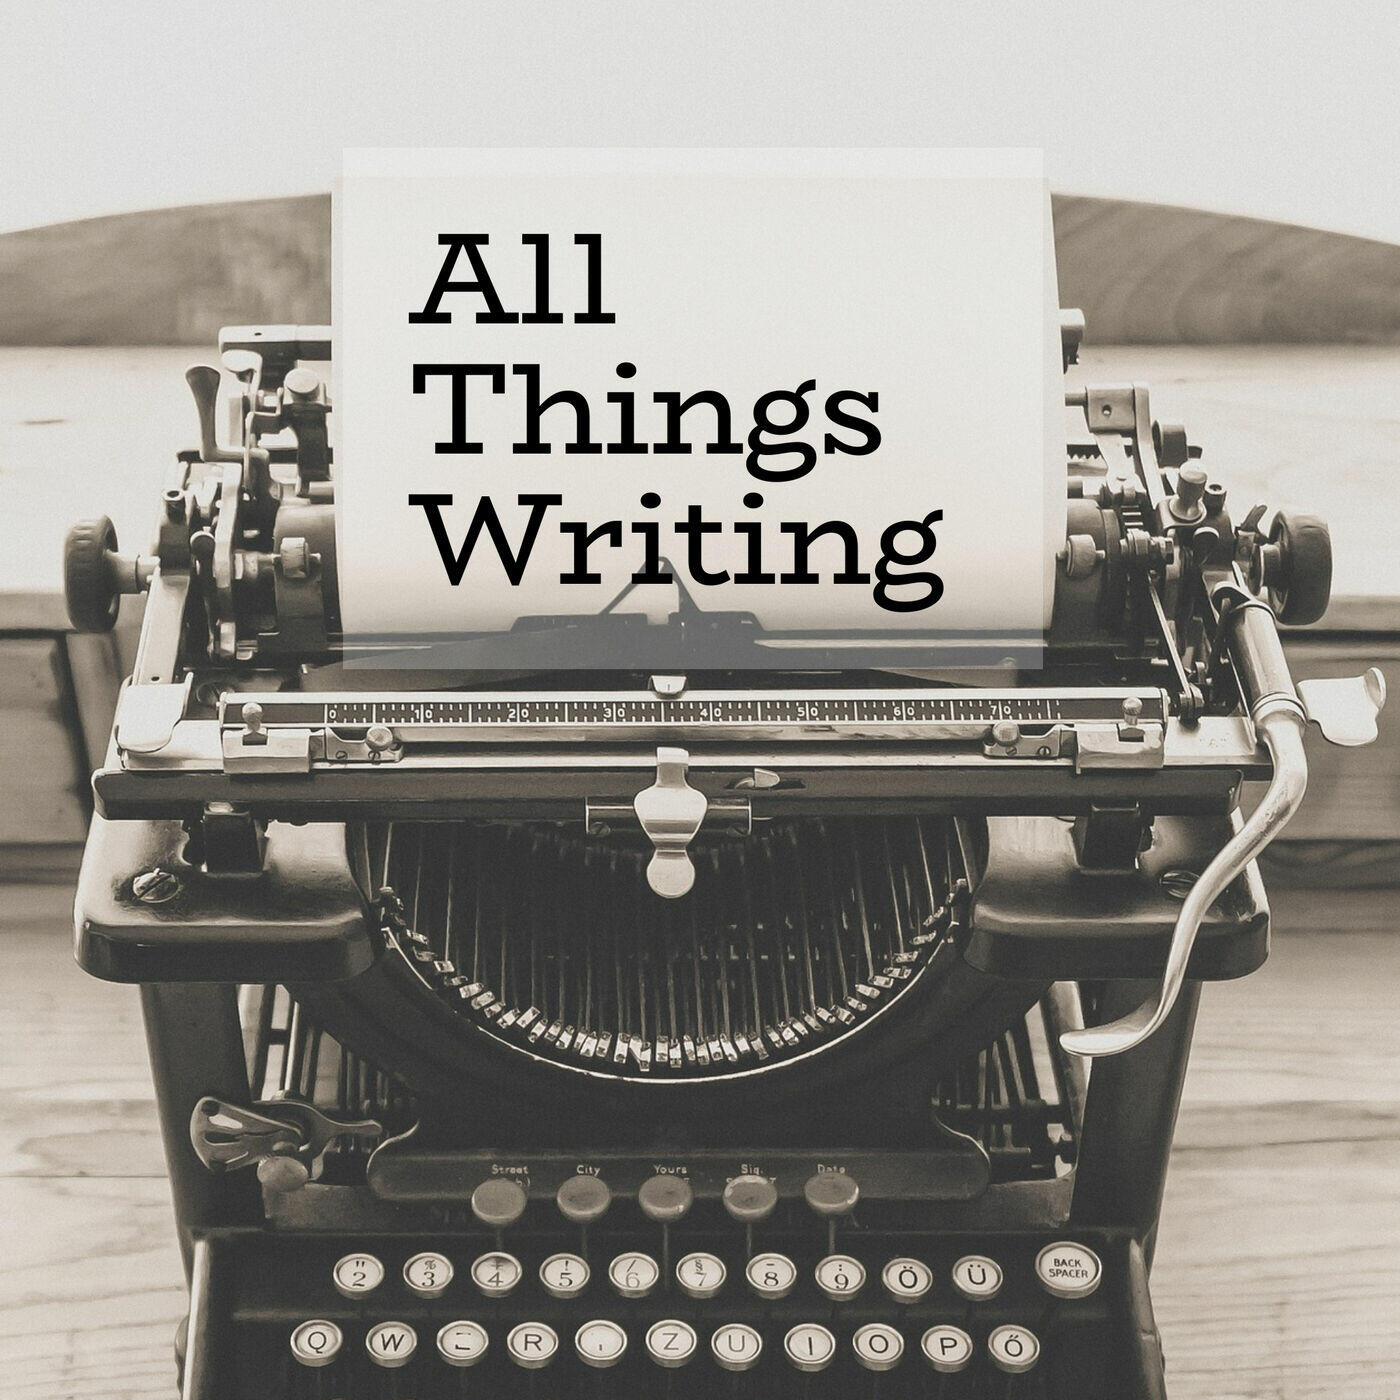 All Things Writing